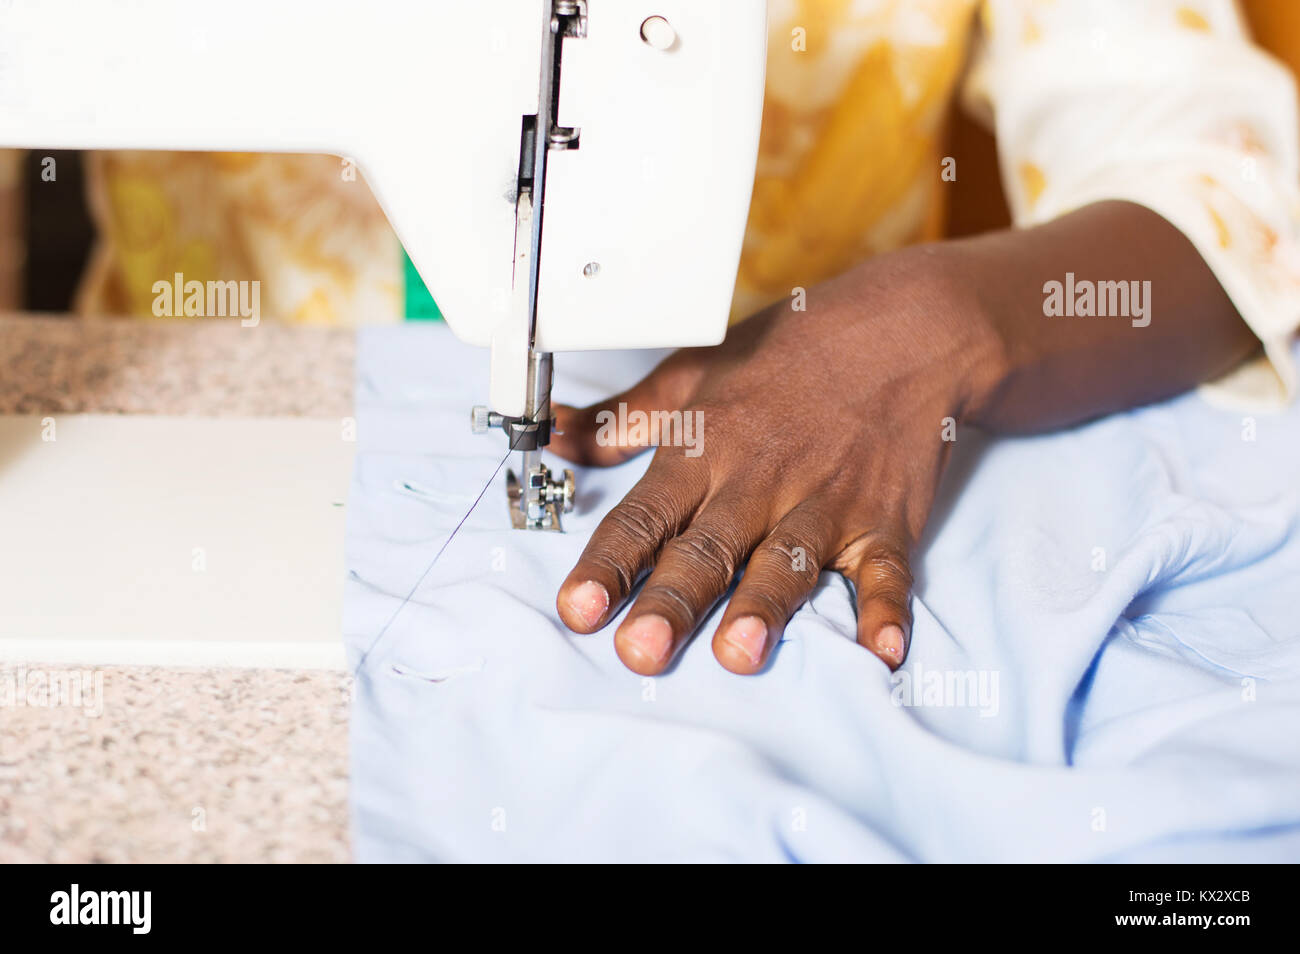 closeup of the woman's hand behind a sewing machine. - Stock Image